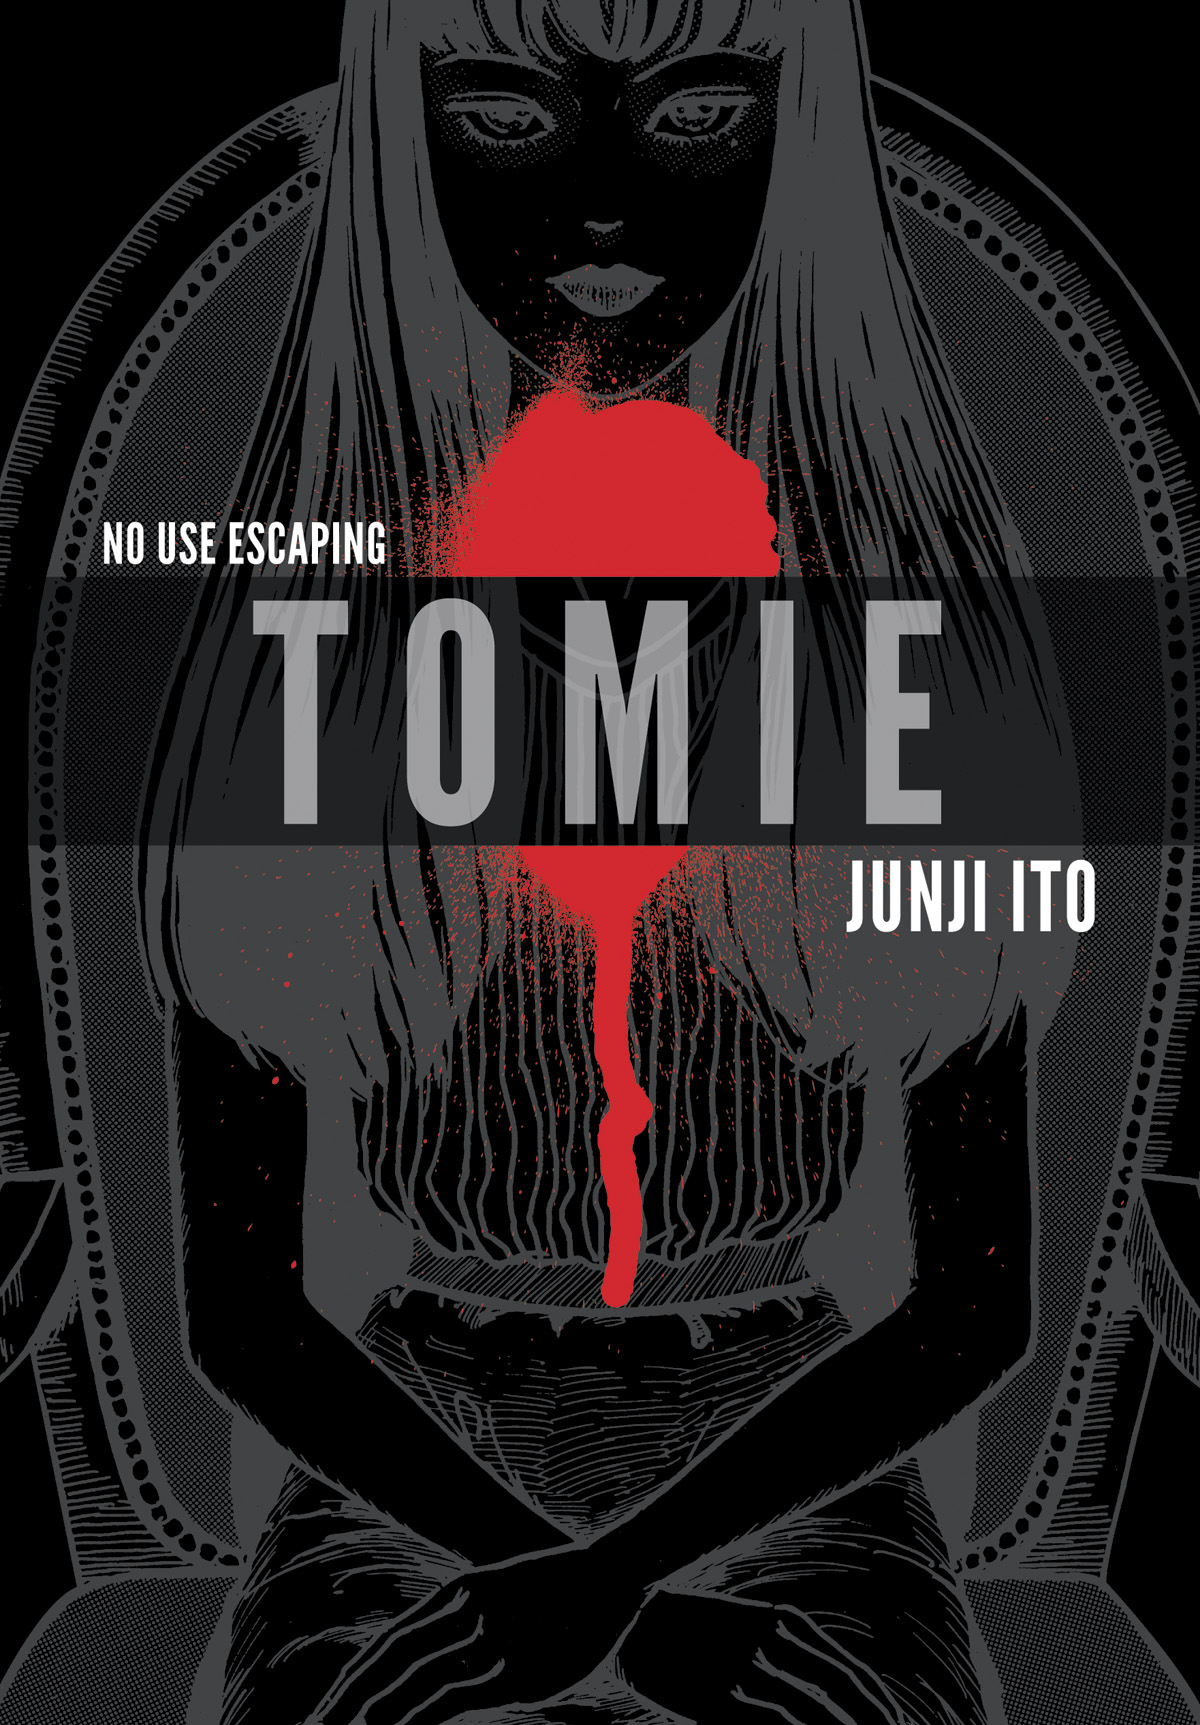 TOMIE COMPLETE DLX ED HC JUNJI ITO (MR)